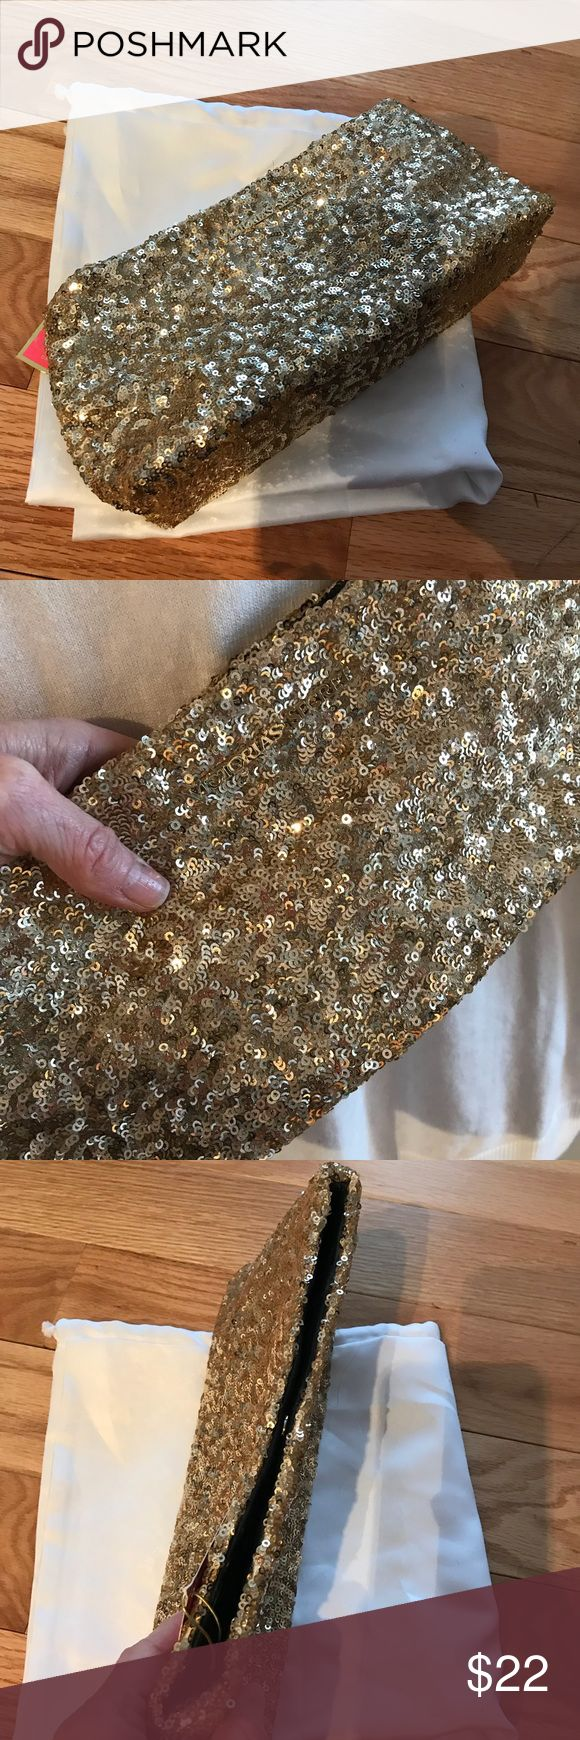 🎀NEW🎀VICTORIA'S SECRET Gold Sequin Clutch 🎀VICTORIA'S SECRET🎀. Gold Sequin Clutch. Perfect with that LBD for the Holidays!❌NO TRADING OR HOLDING Victoria's Secret Bags Clutches & Wristlets